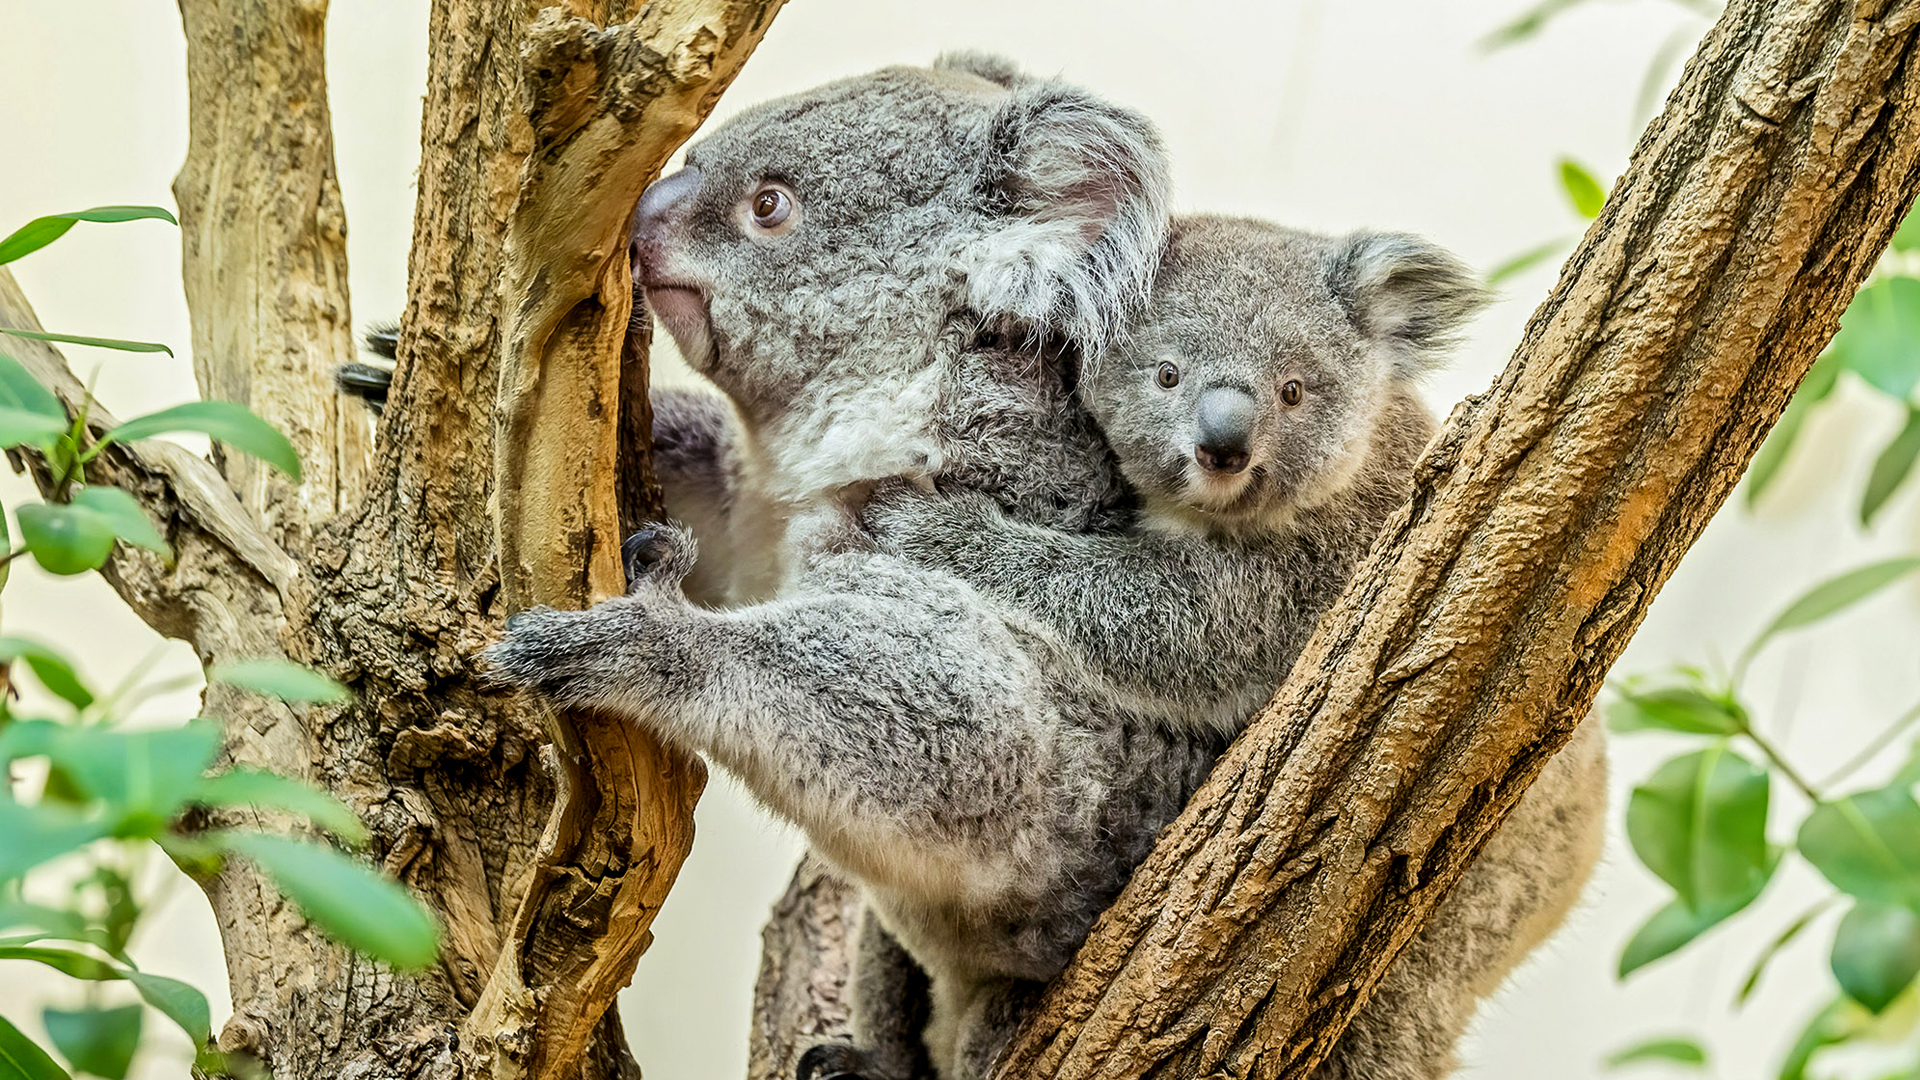 Joey in Vienna Zoo Cuddles Up to Mom in Heartwarming Video